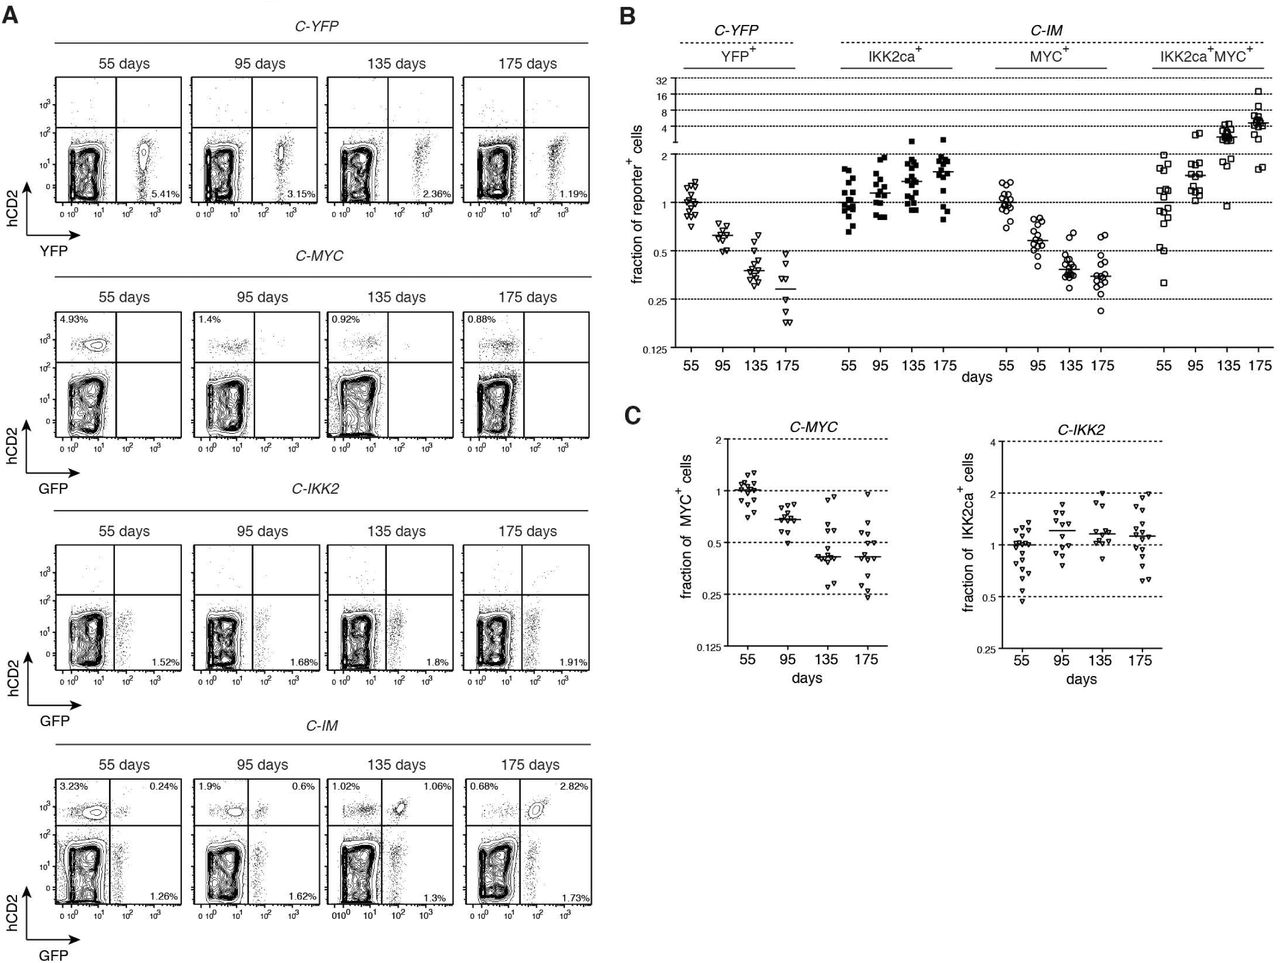 Dynamics of reporter positive subpopulations over-time. (A) Representative flow cytometric analysis of Cre-mediated recombination in the blood of C-YFP, C-MYC, C-IKK2 , and C-IM at days 55, 95, 135, 175 after the first tamoxifen administration. (B) Fraction of cells within the individual reporter positive populations: YFP + in C-YFP mice and GFP neg hCD2 + i.e. MYC + , GFP + hCD2 neg i.e. IKK2ca + , and GFP + hCD2 + i.e. IKK2ca + MYC + in C-IM mice. Frequencies were normalized to day 55 after the first tamoxifen administration. (C) Left, fraction of GFP neg hCD2 + i.e. MYC + in C-MYC mice. Right, fraction of GFP + hCD2 neg i.e. IKK2ca + in C-IKK2 mice. Frequencies were normalized to day 55 after the first tamoxifen administration.